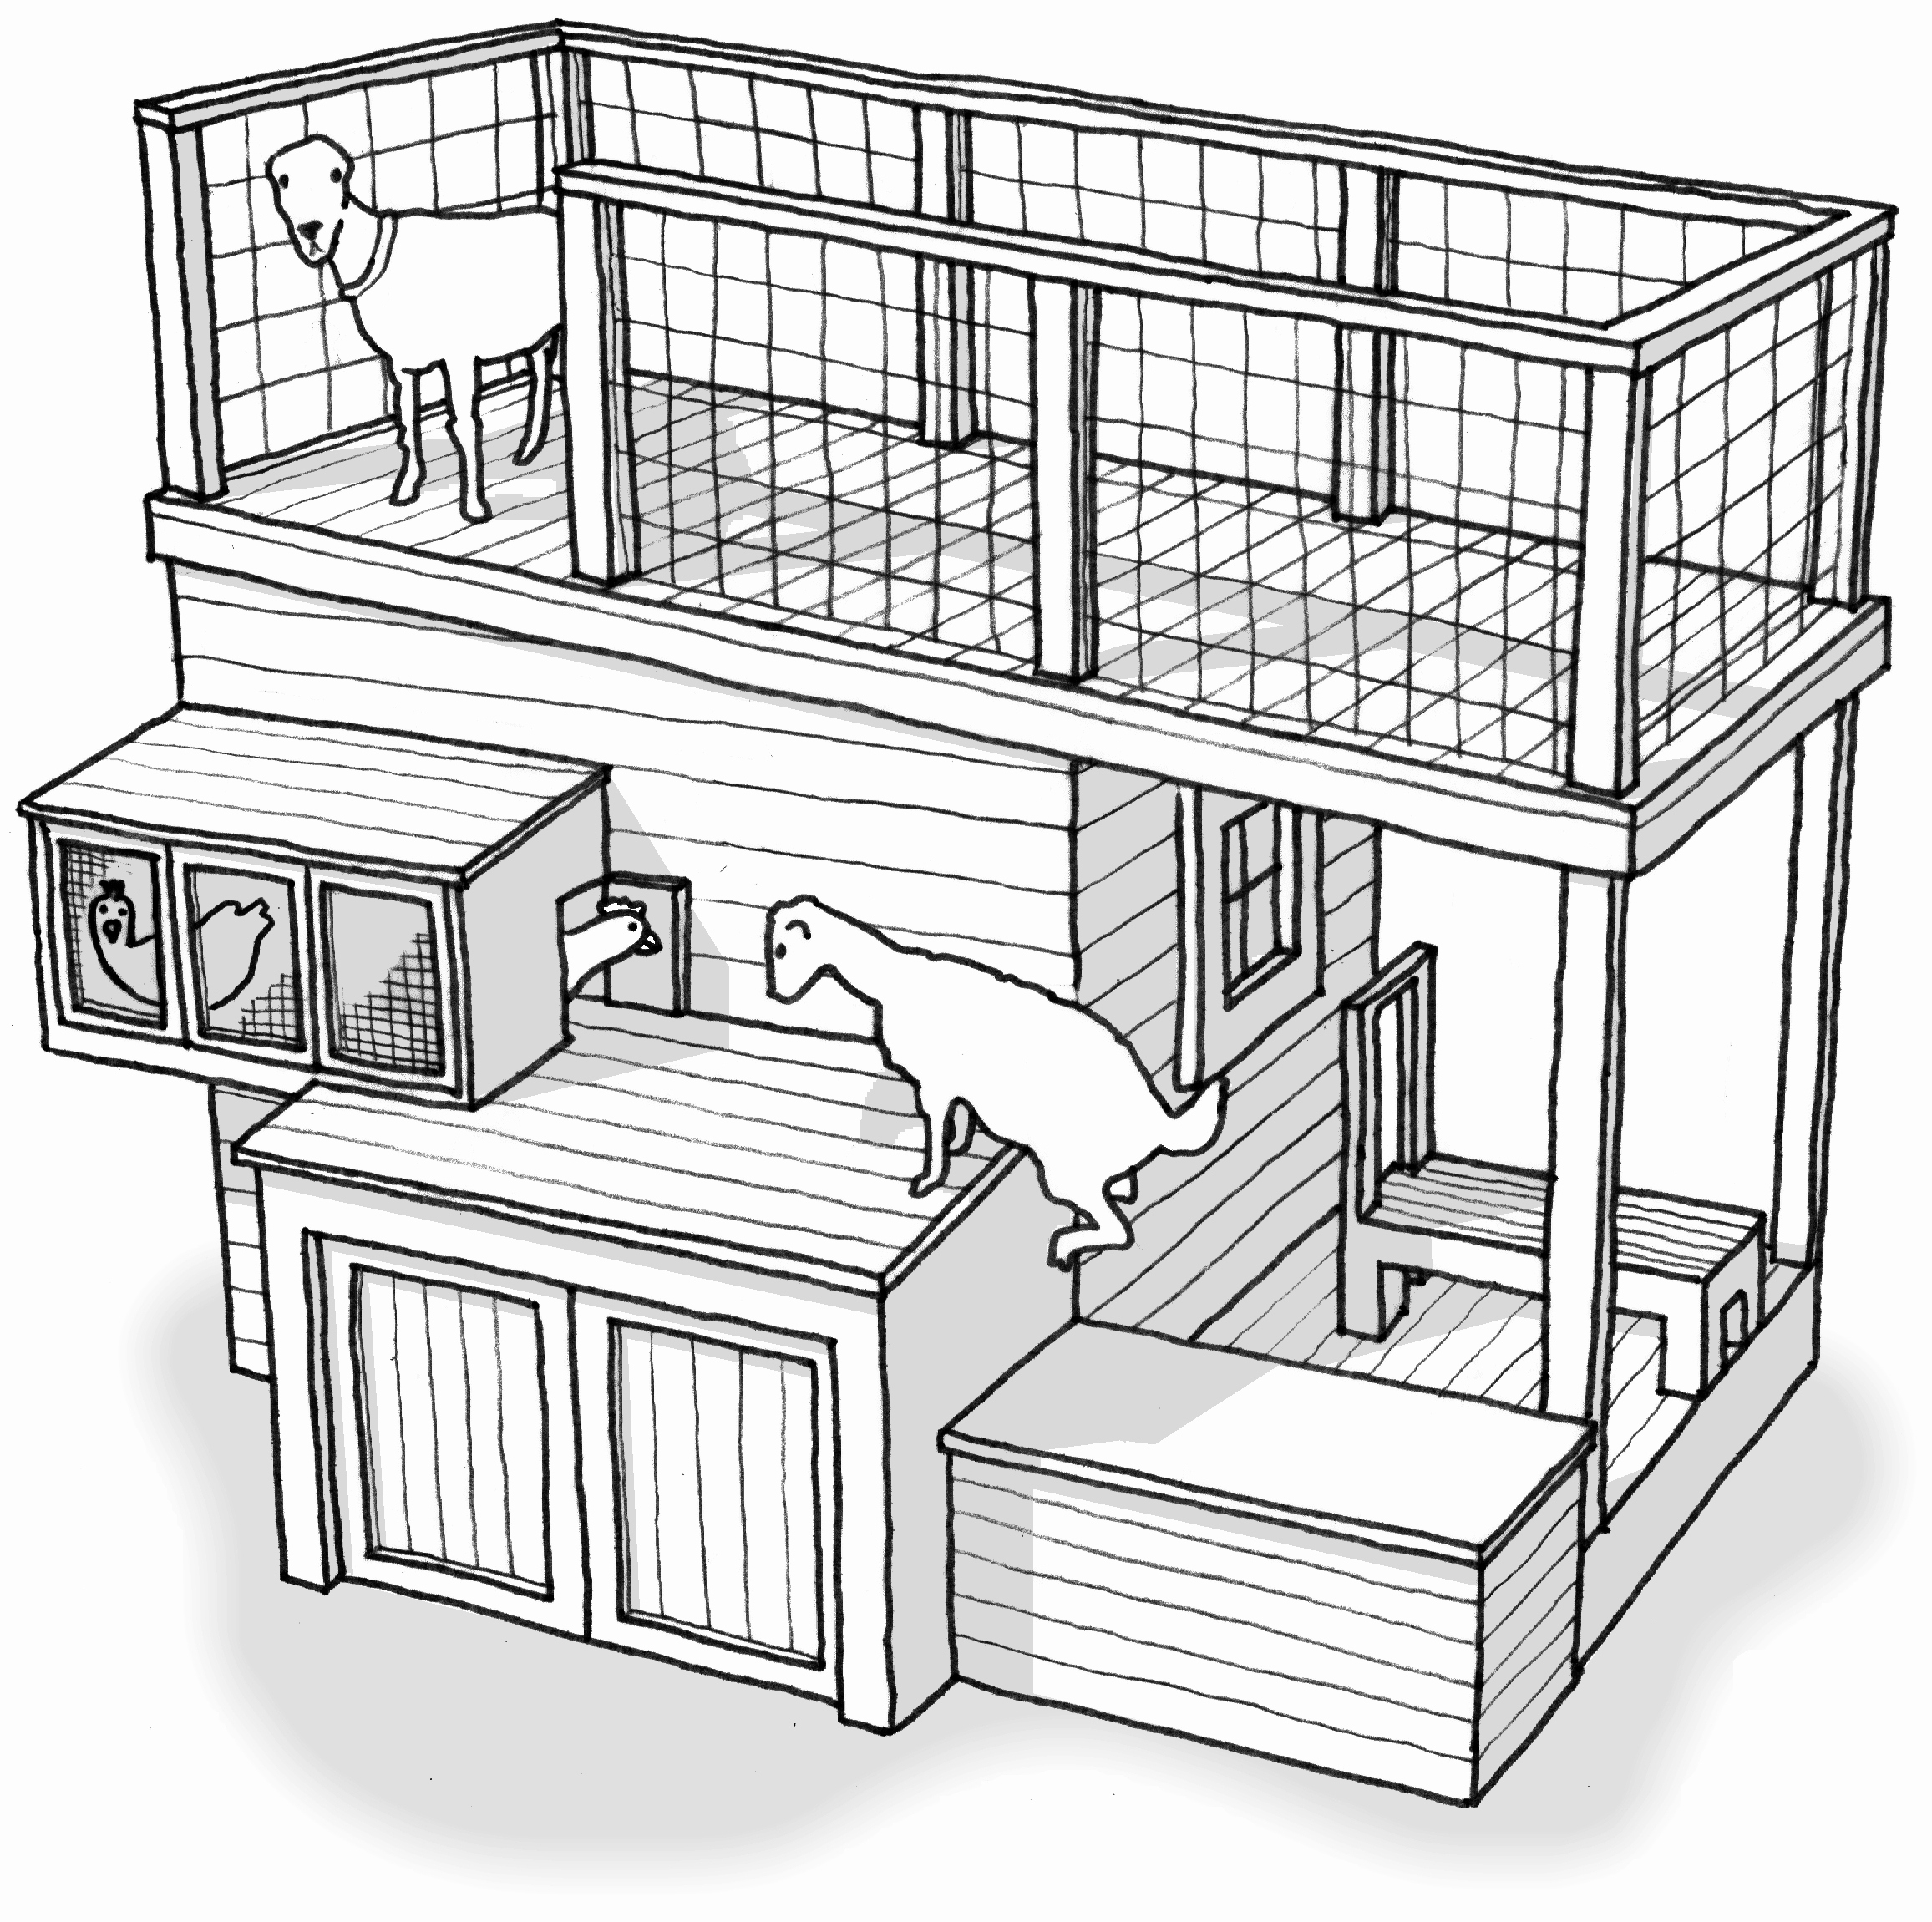 2313x2301 Uncategorized Chicken House Building Plan Perky Within Inspiring